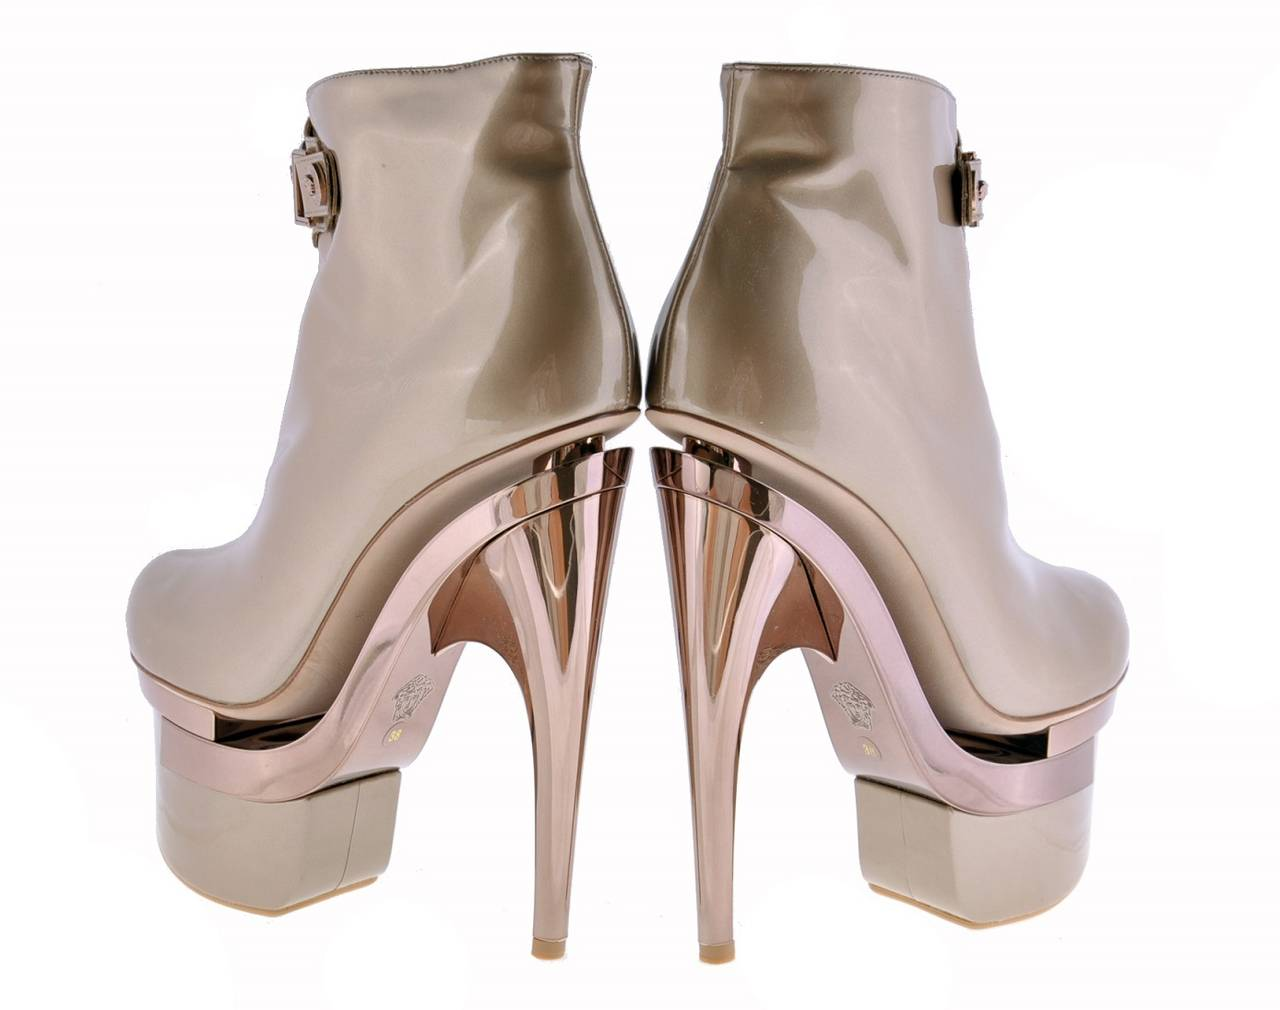 New VERSACE ROSE GOLD TRIPLE PLATFORM BOOTS  3